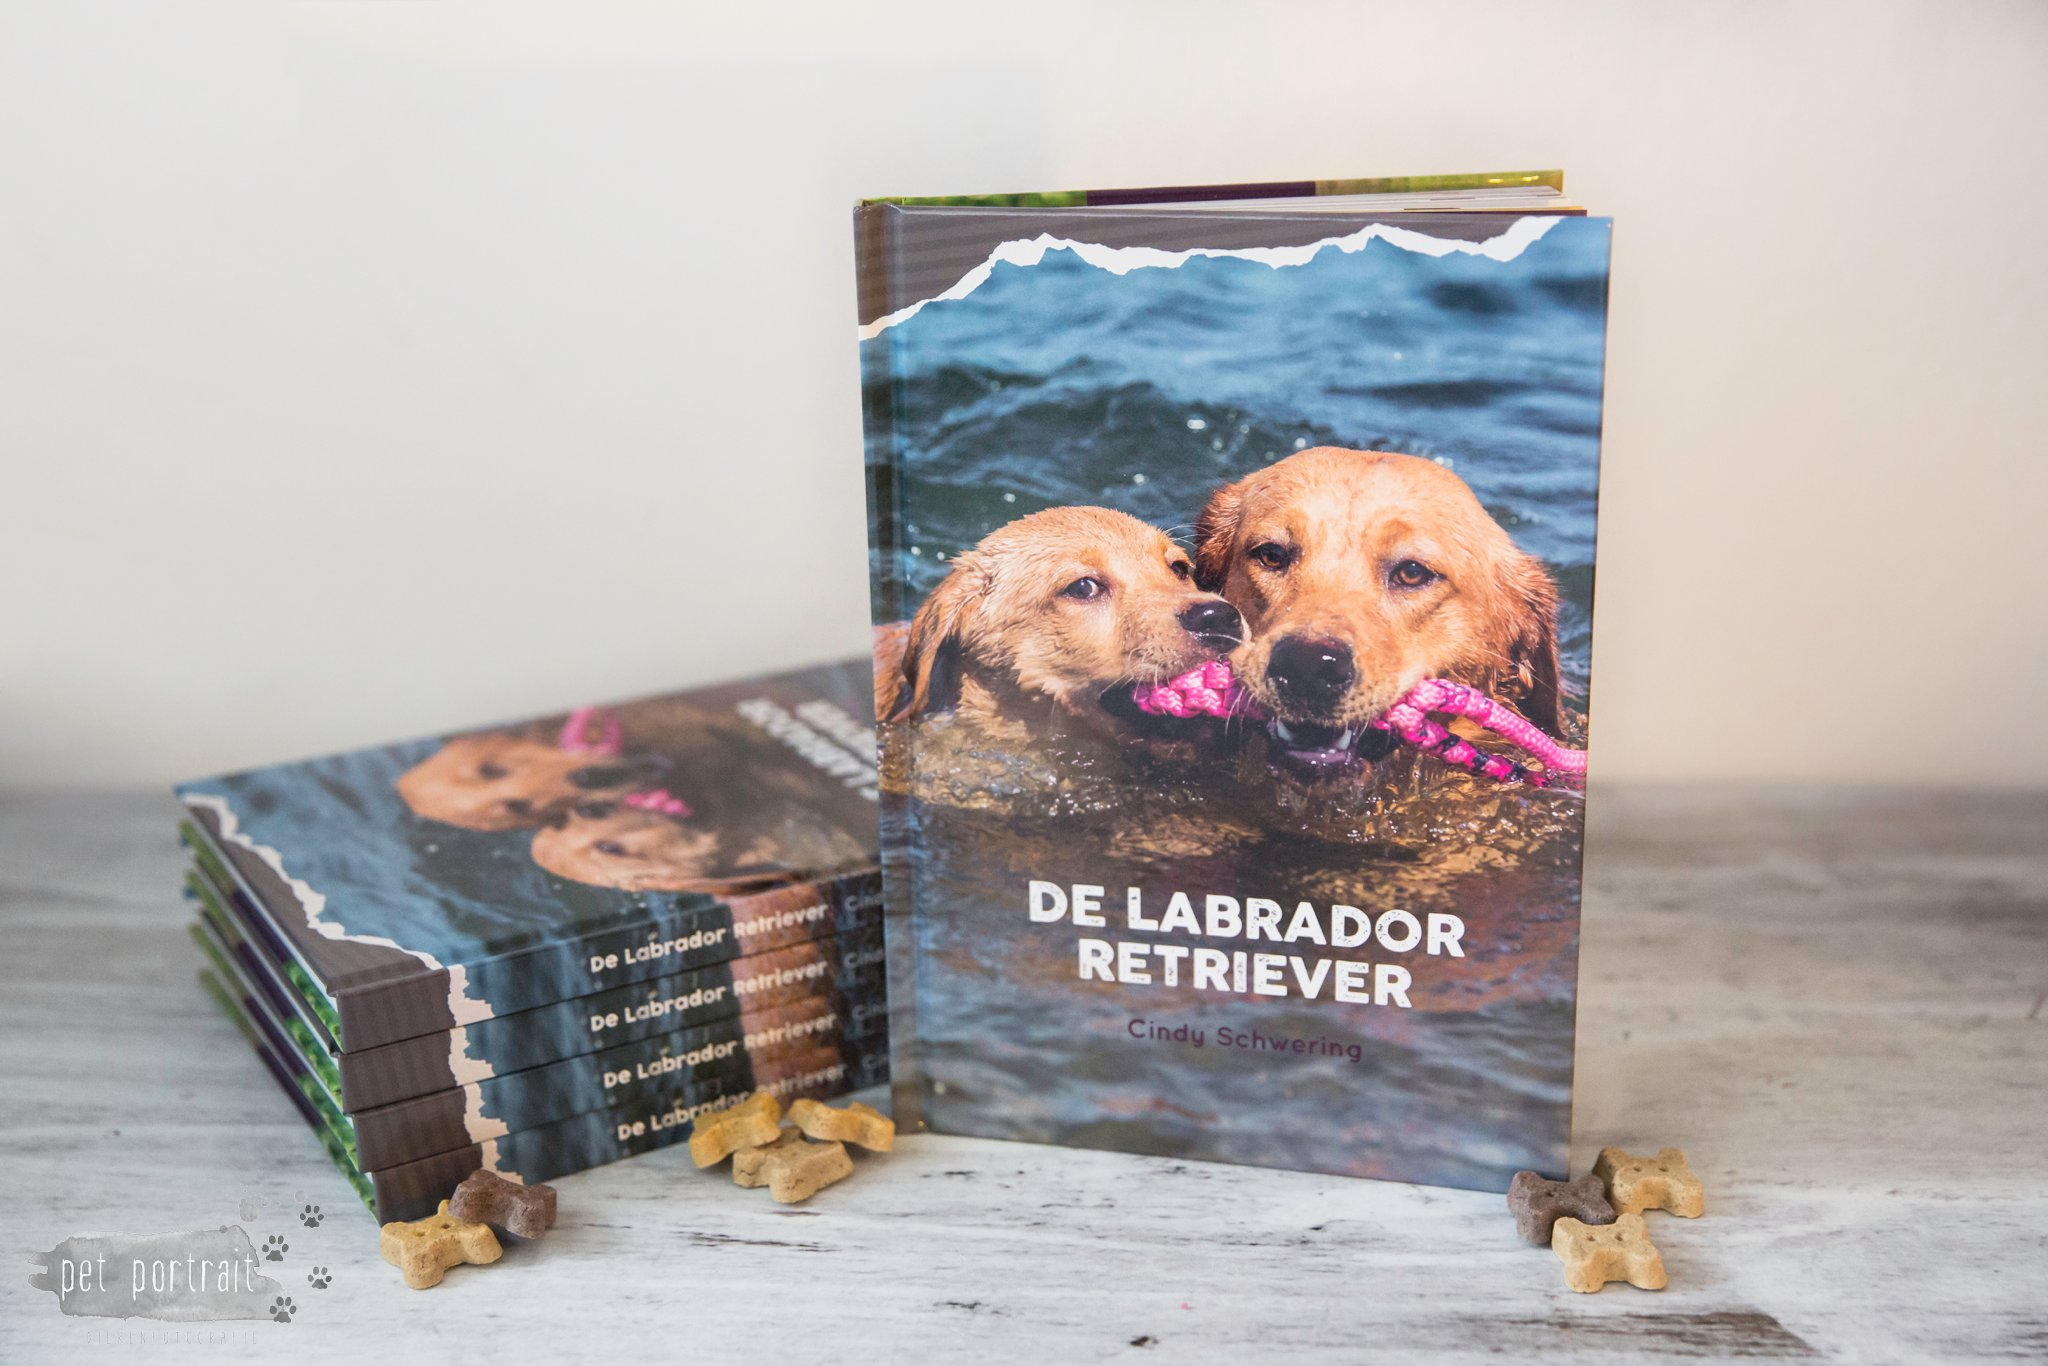 Publicatie Pet Portrait - Boek 'De Labrador Retriever' van Cindy Schwering